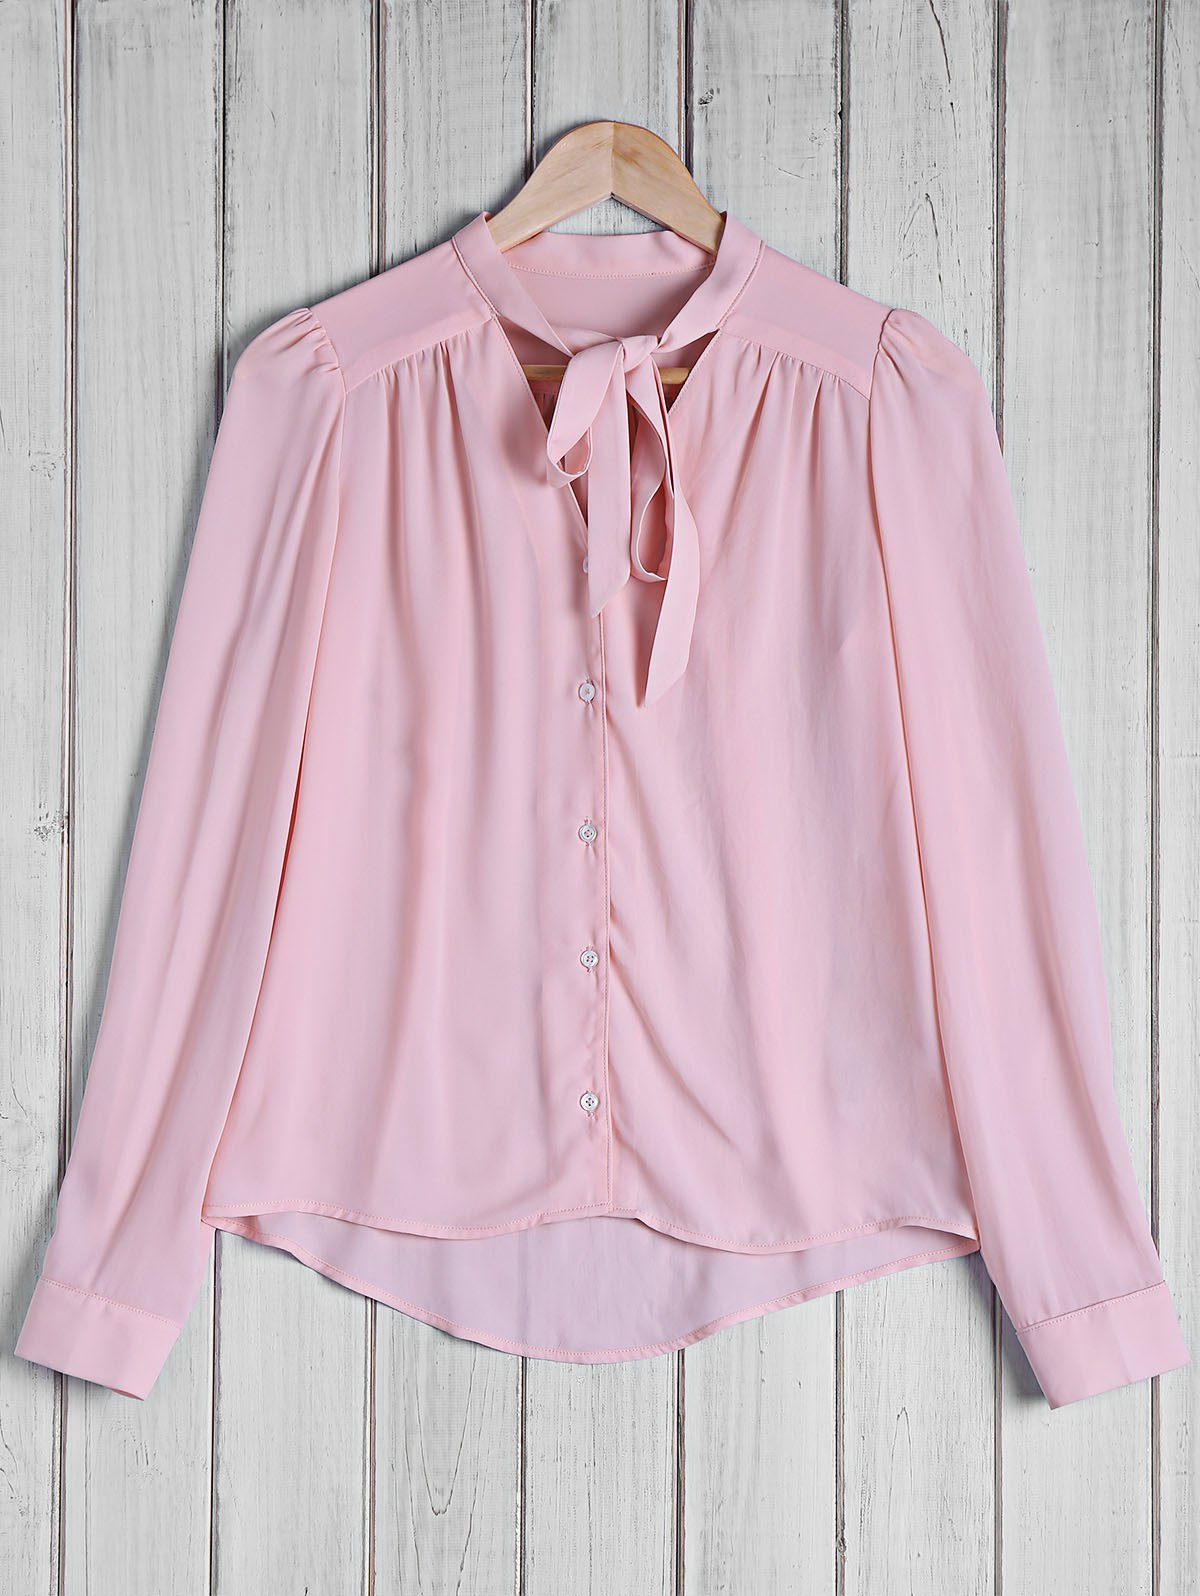 Online Stylish Bow Tie Collar Solid Color Long Sleeve Blouse For Women